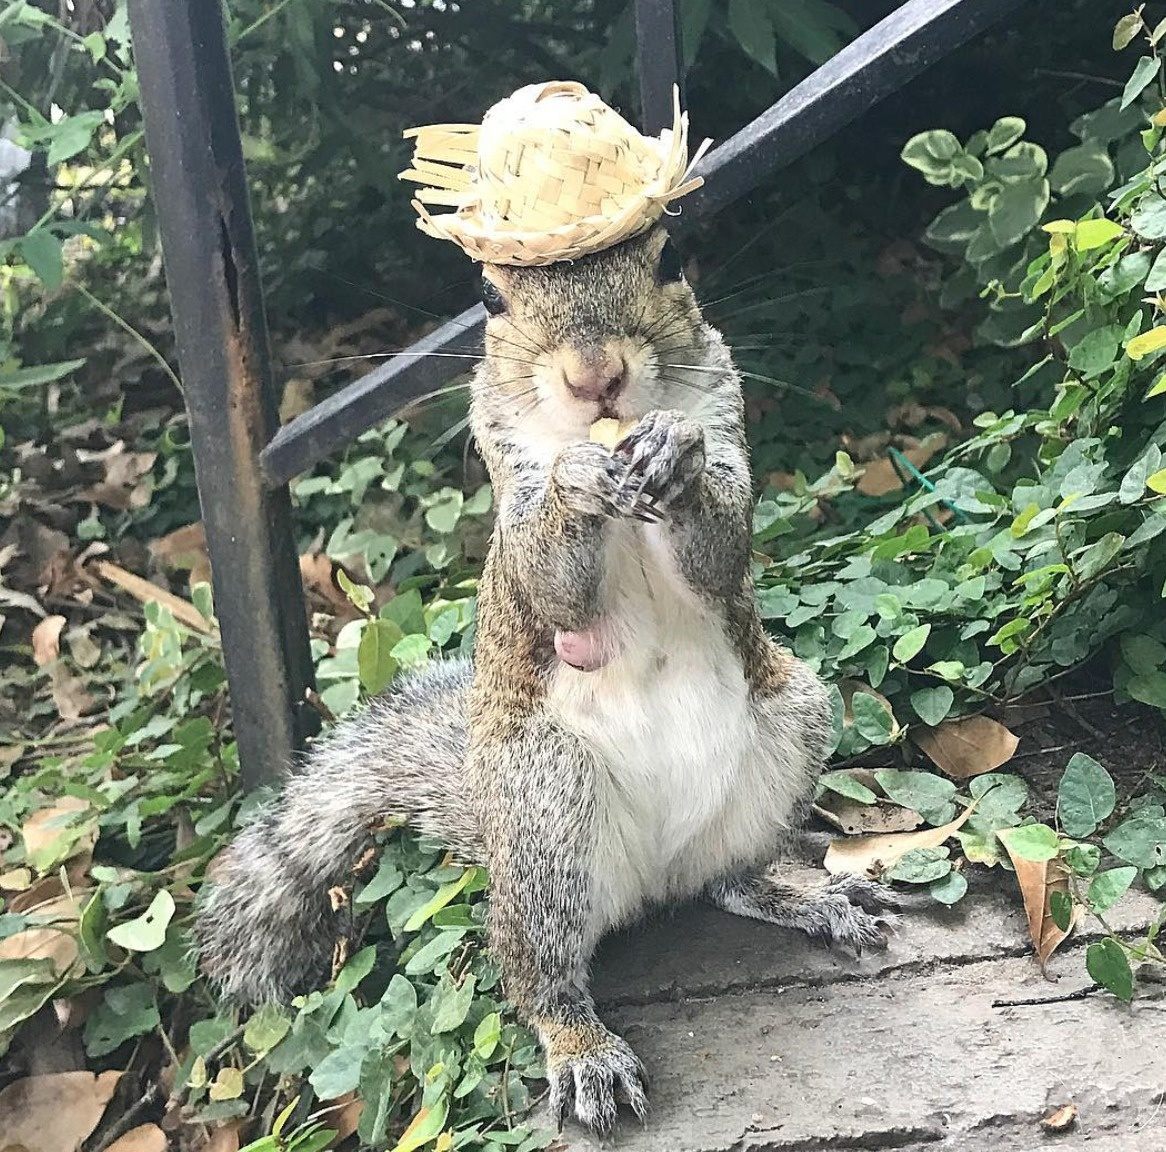 squirrel bella spent too much time with her adoptive family